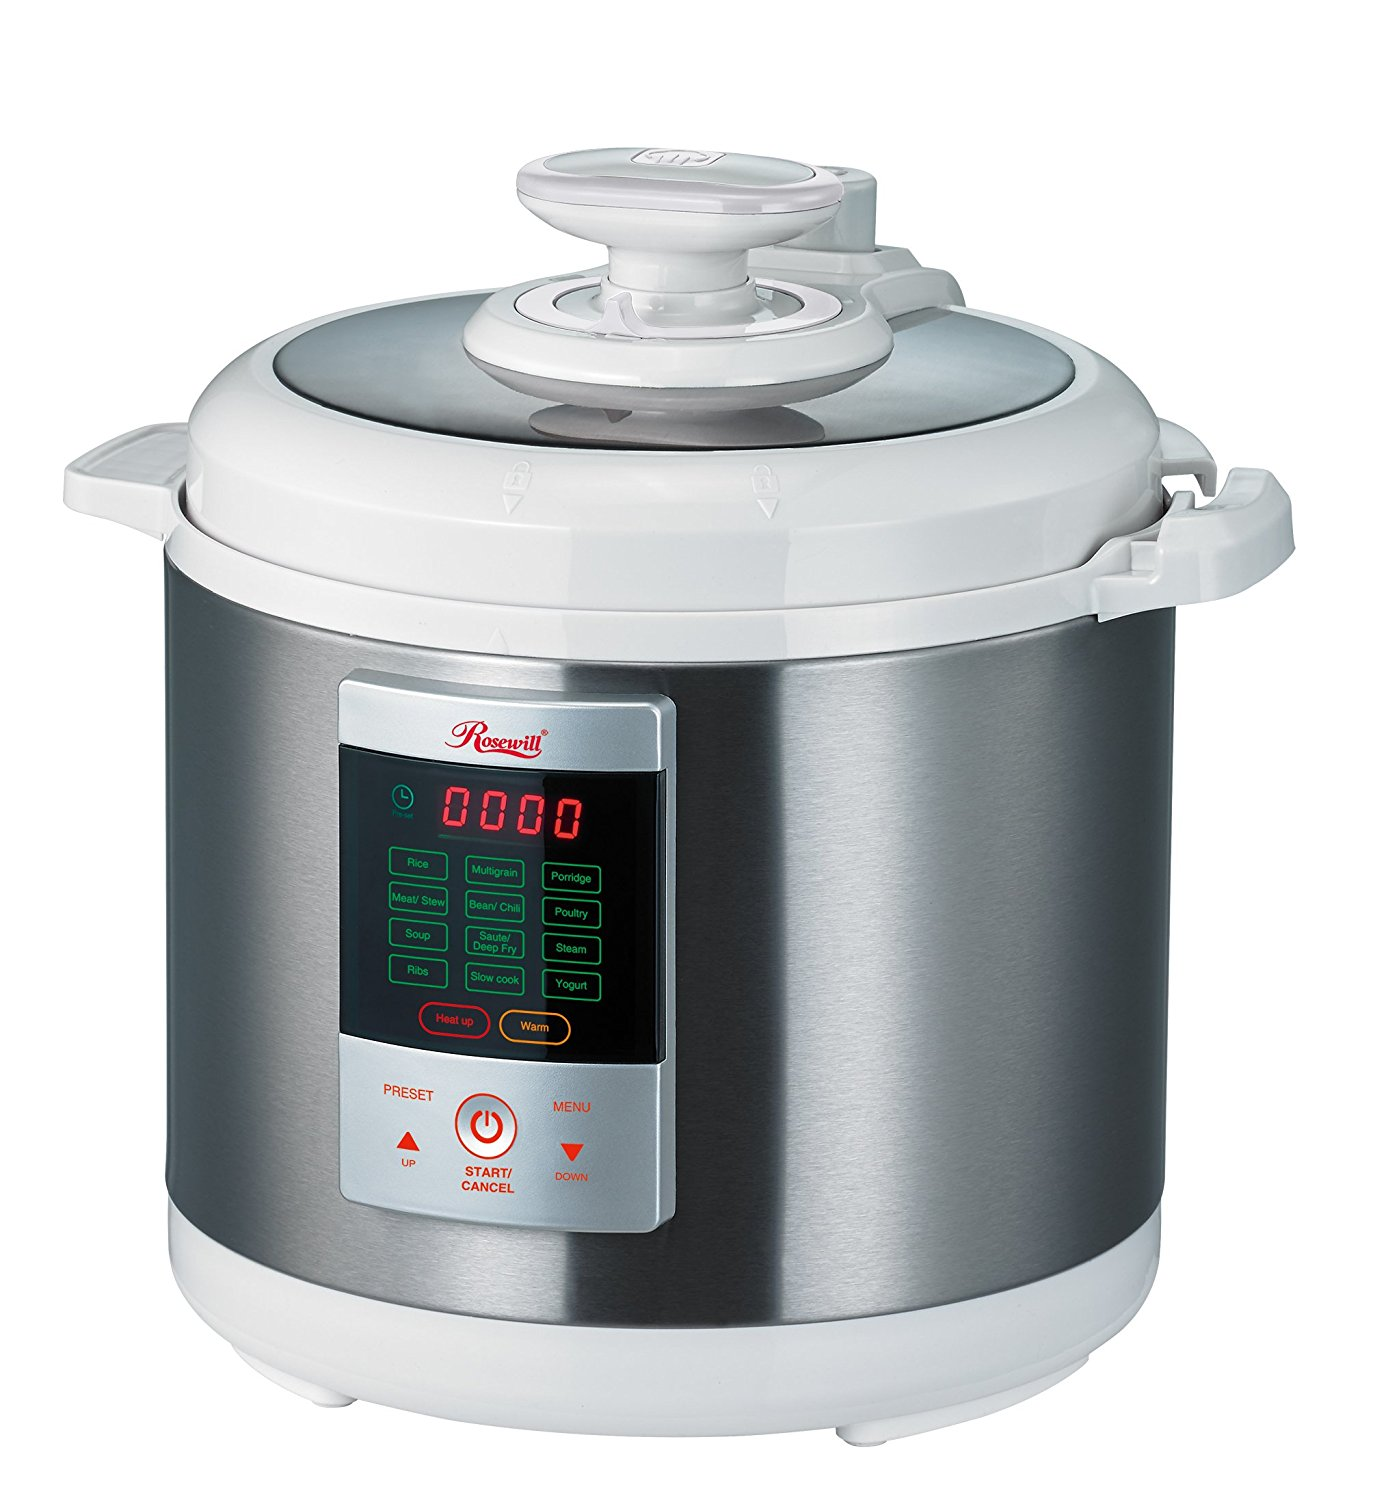 Rosewill 7-in-1 Multi-Function Programmable 6L Electric Pressure Cooker